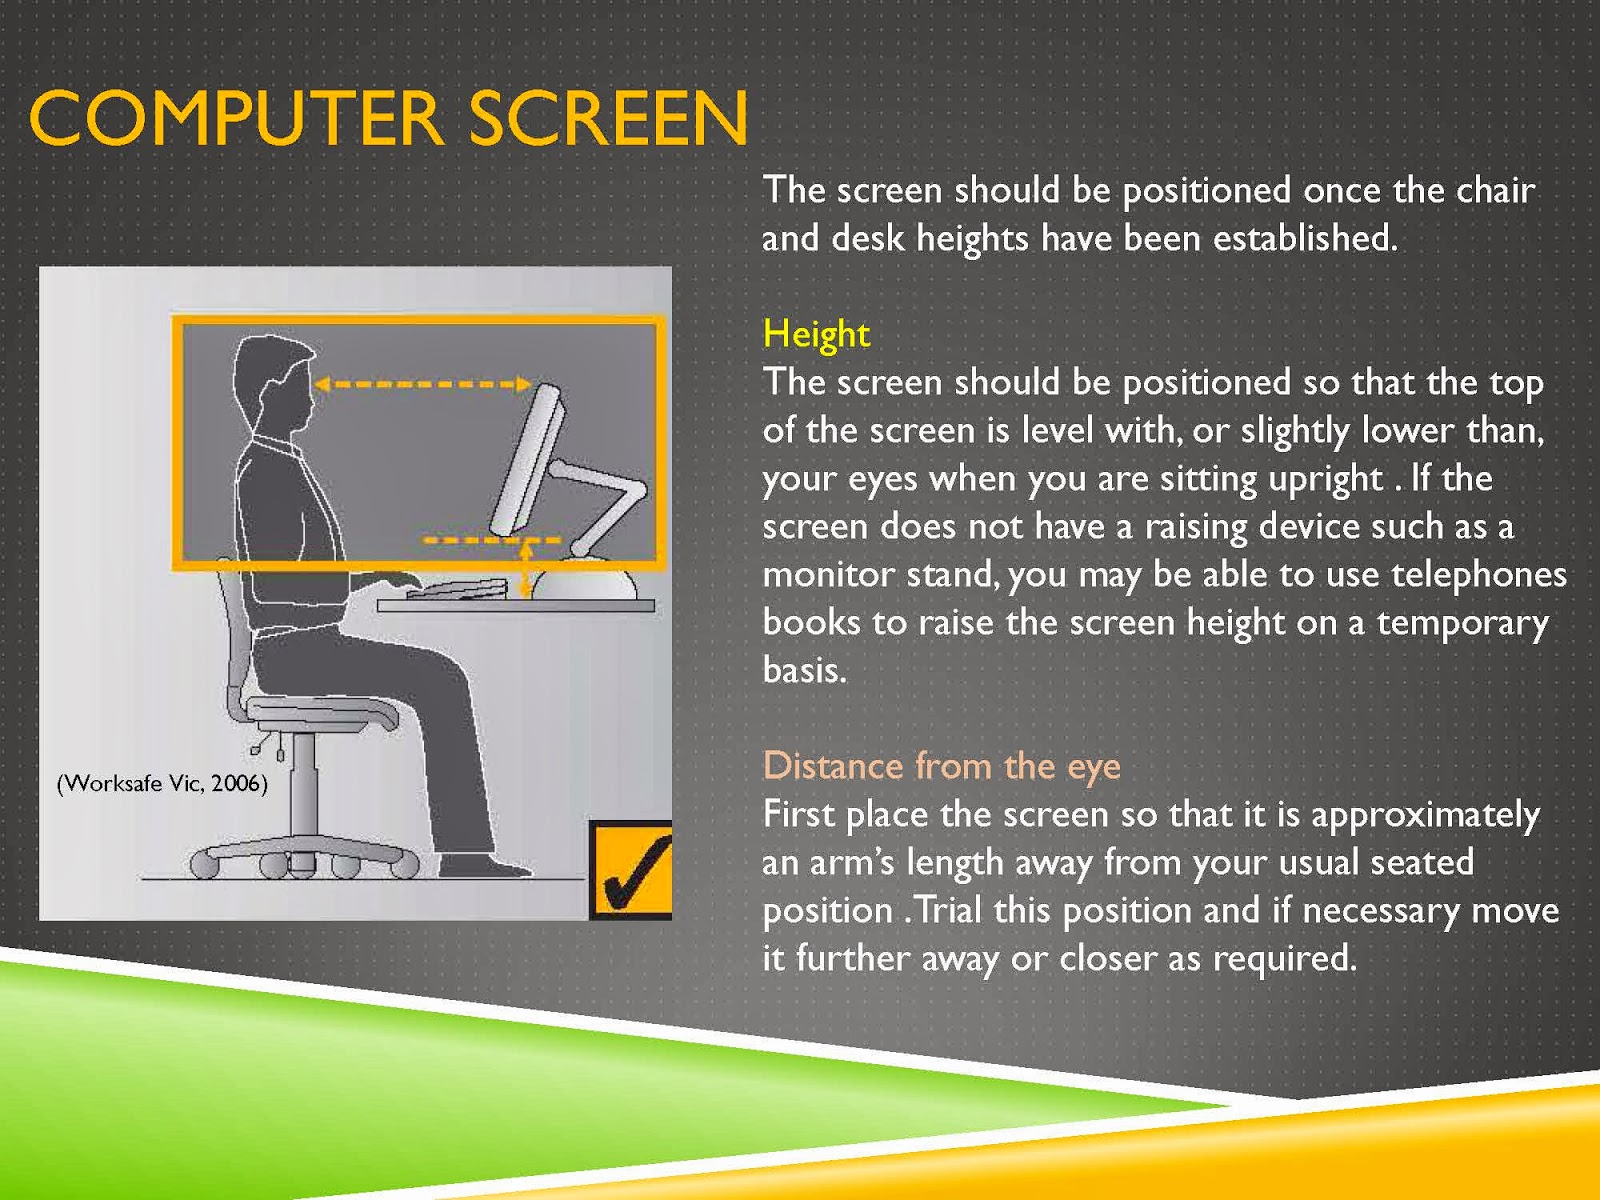 COMPUTER SCREEN HEIGHT AND DISTANCE FROM THE EYE